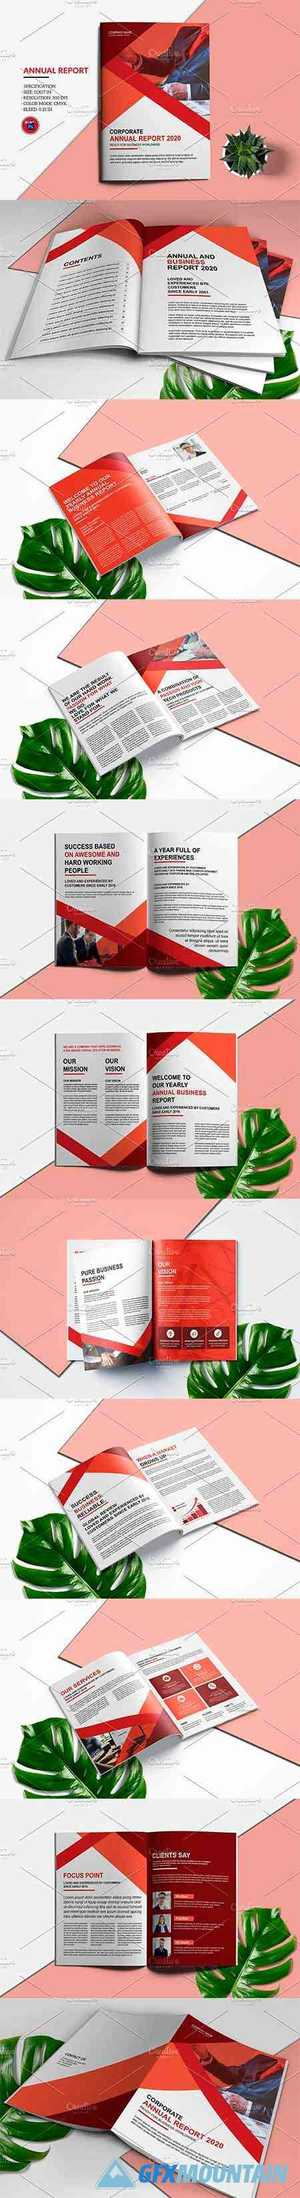 Annual Report Template V982 4442276